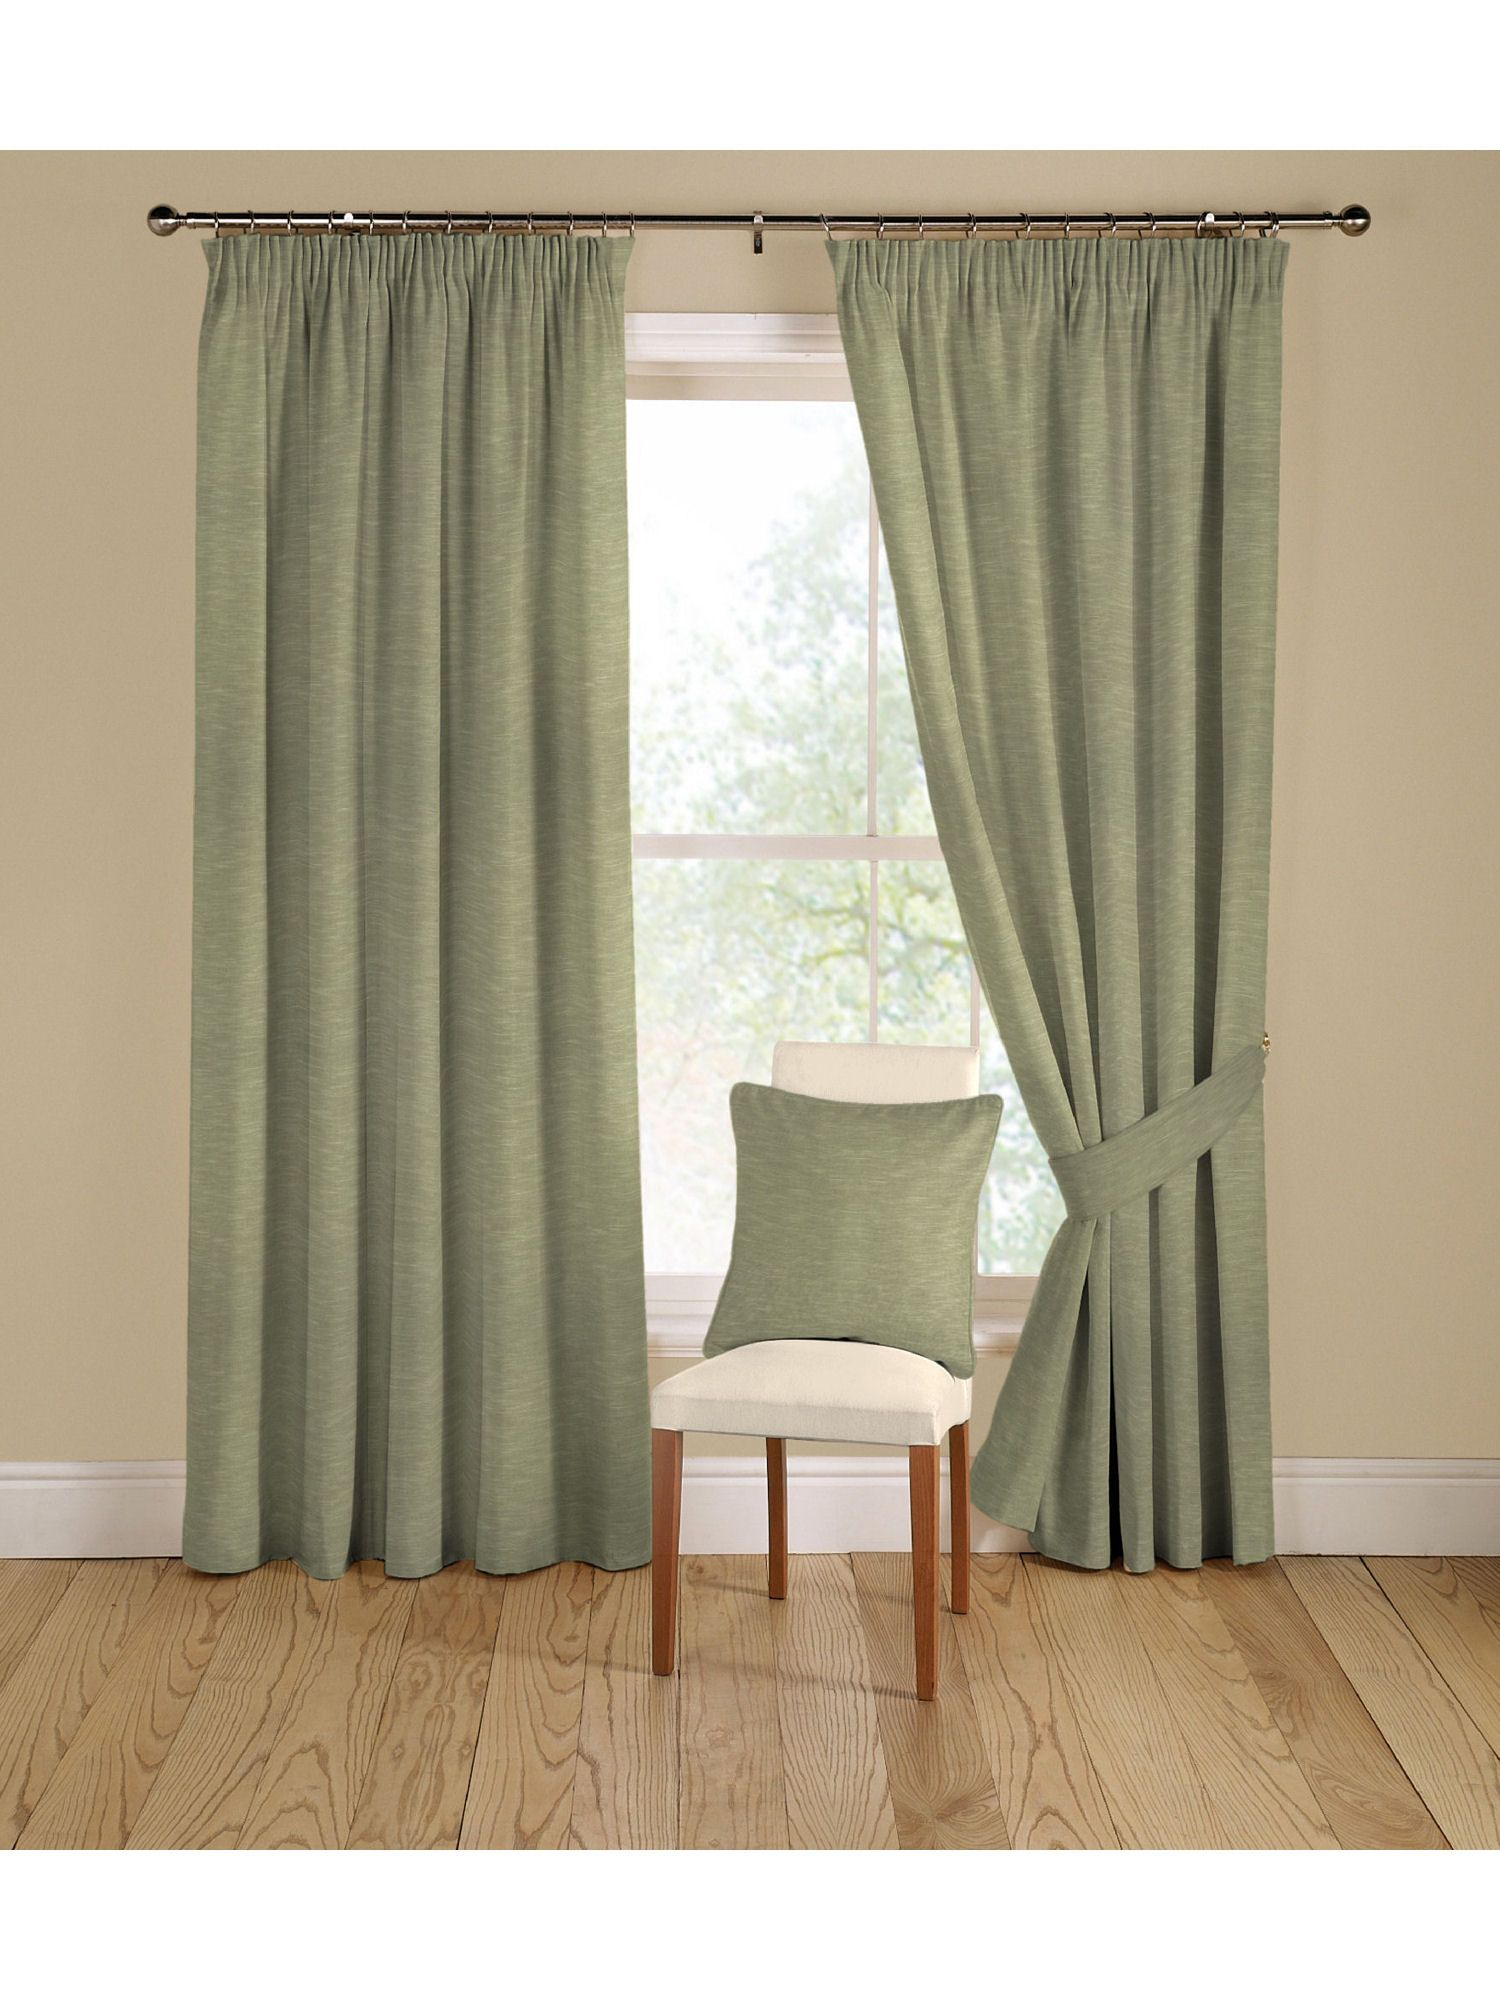 Rectella peru curtains in green